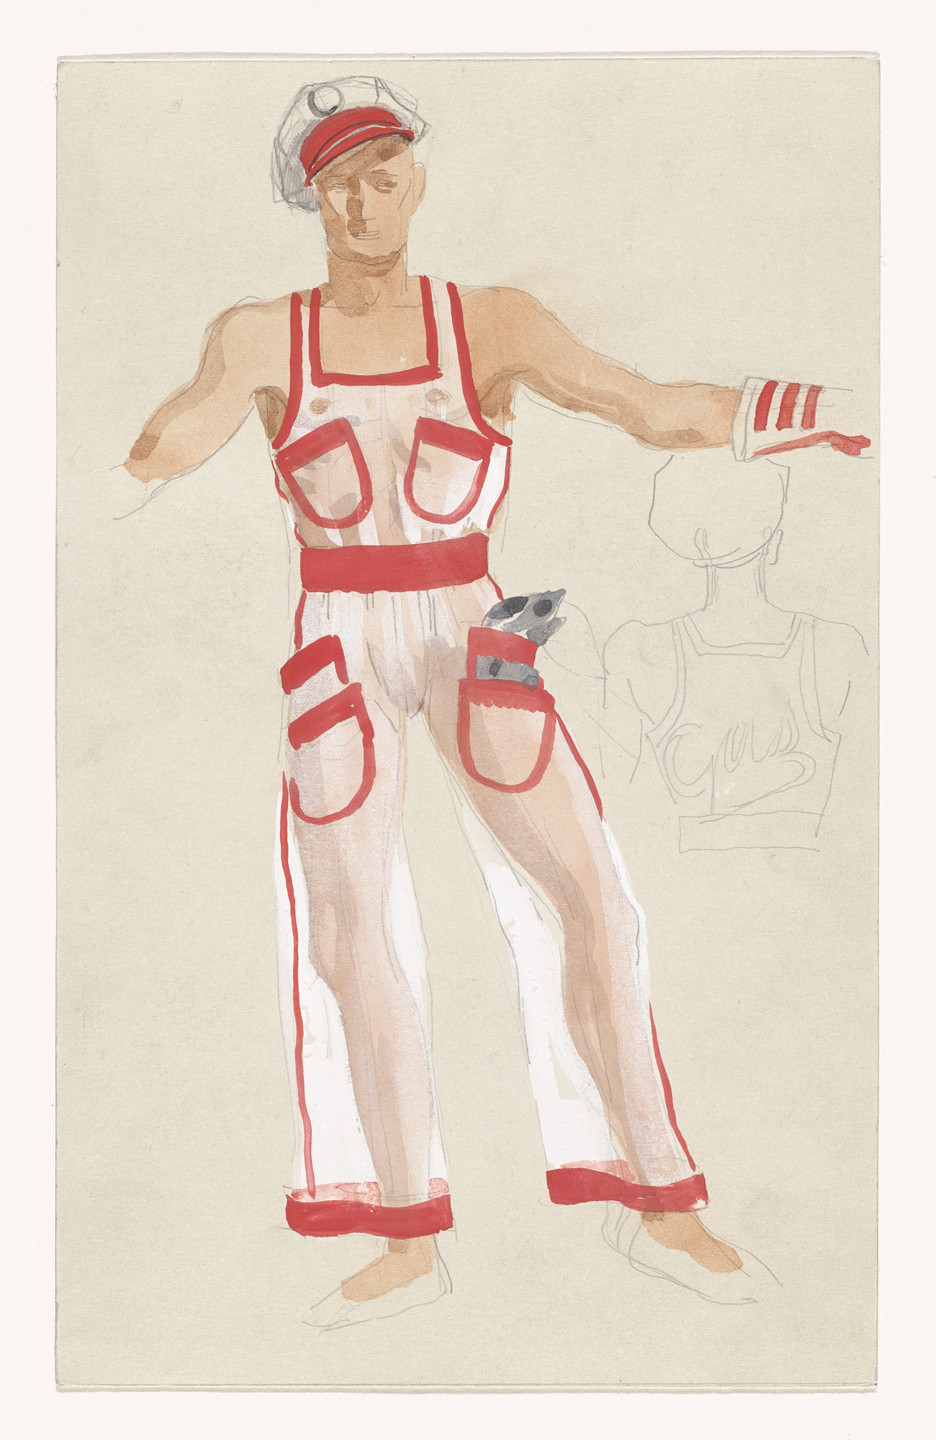 Paul Cadmus. Mac, the Filling Station Attendant. Costume design for the ballet Filling Station. 1937